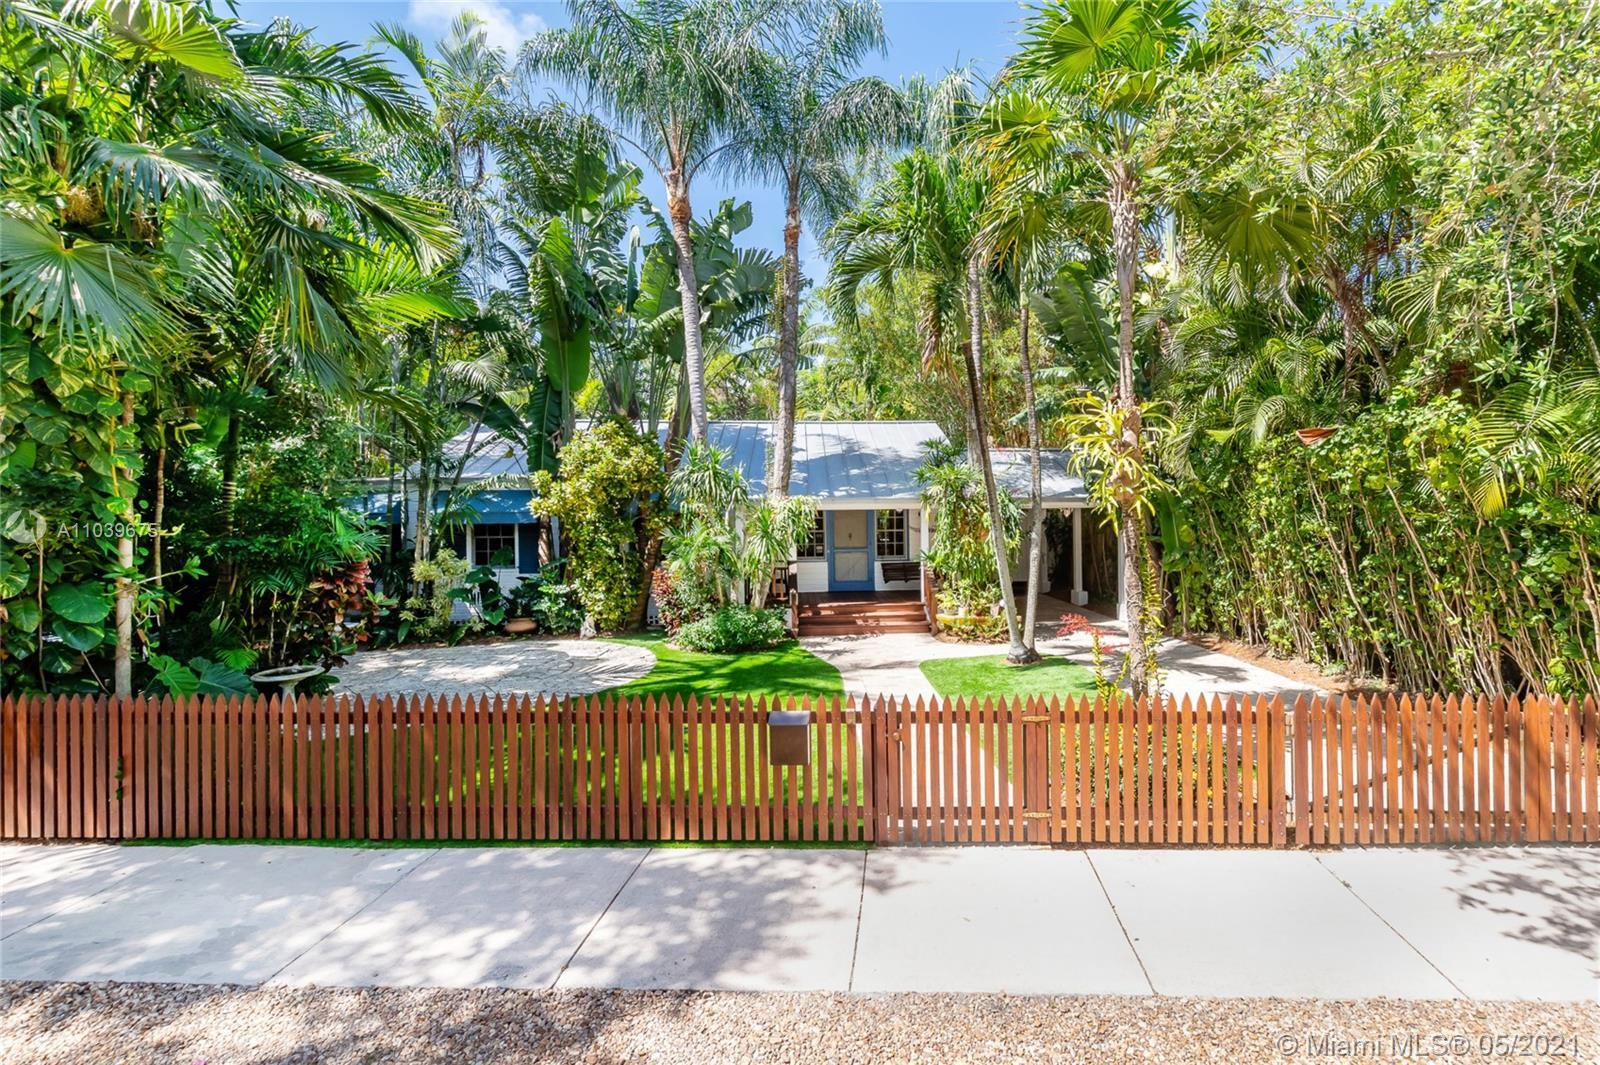 Enter through the Brazilian Ipe picket fence into this Coconut Grove botanical wonder. Exceptional c